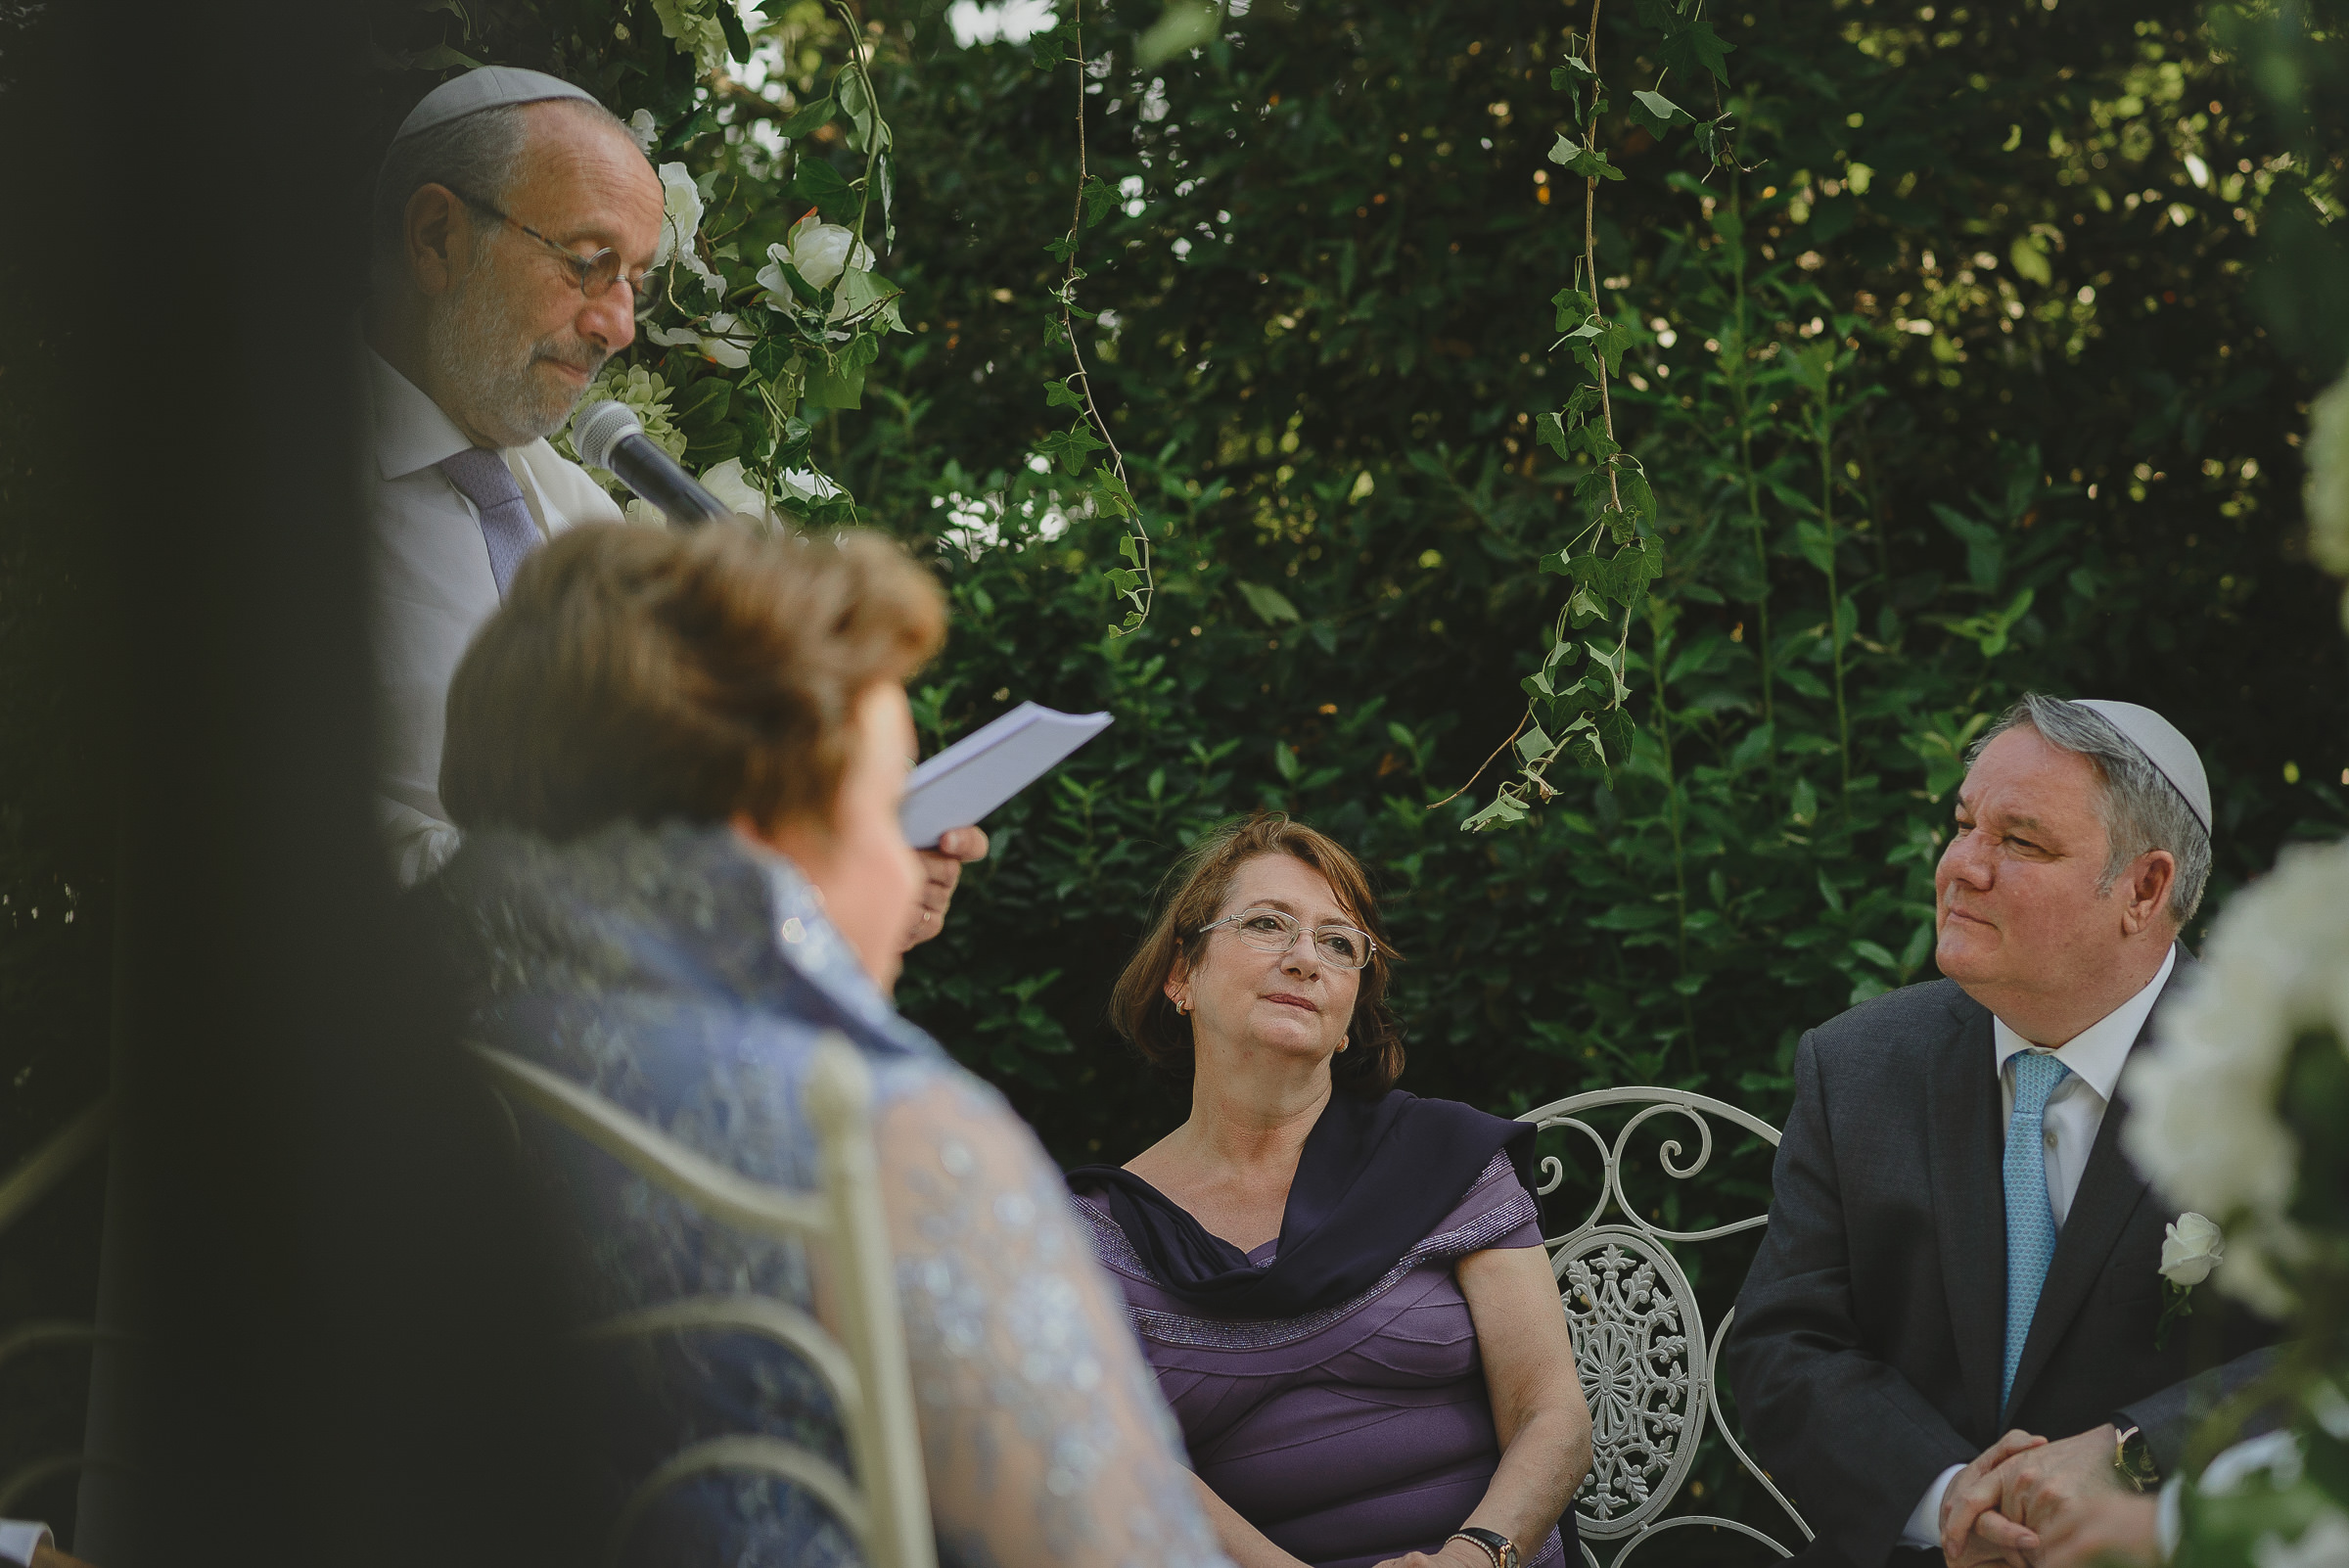 jewish wedding traditions